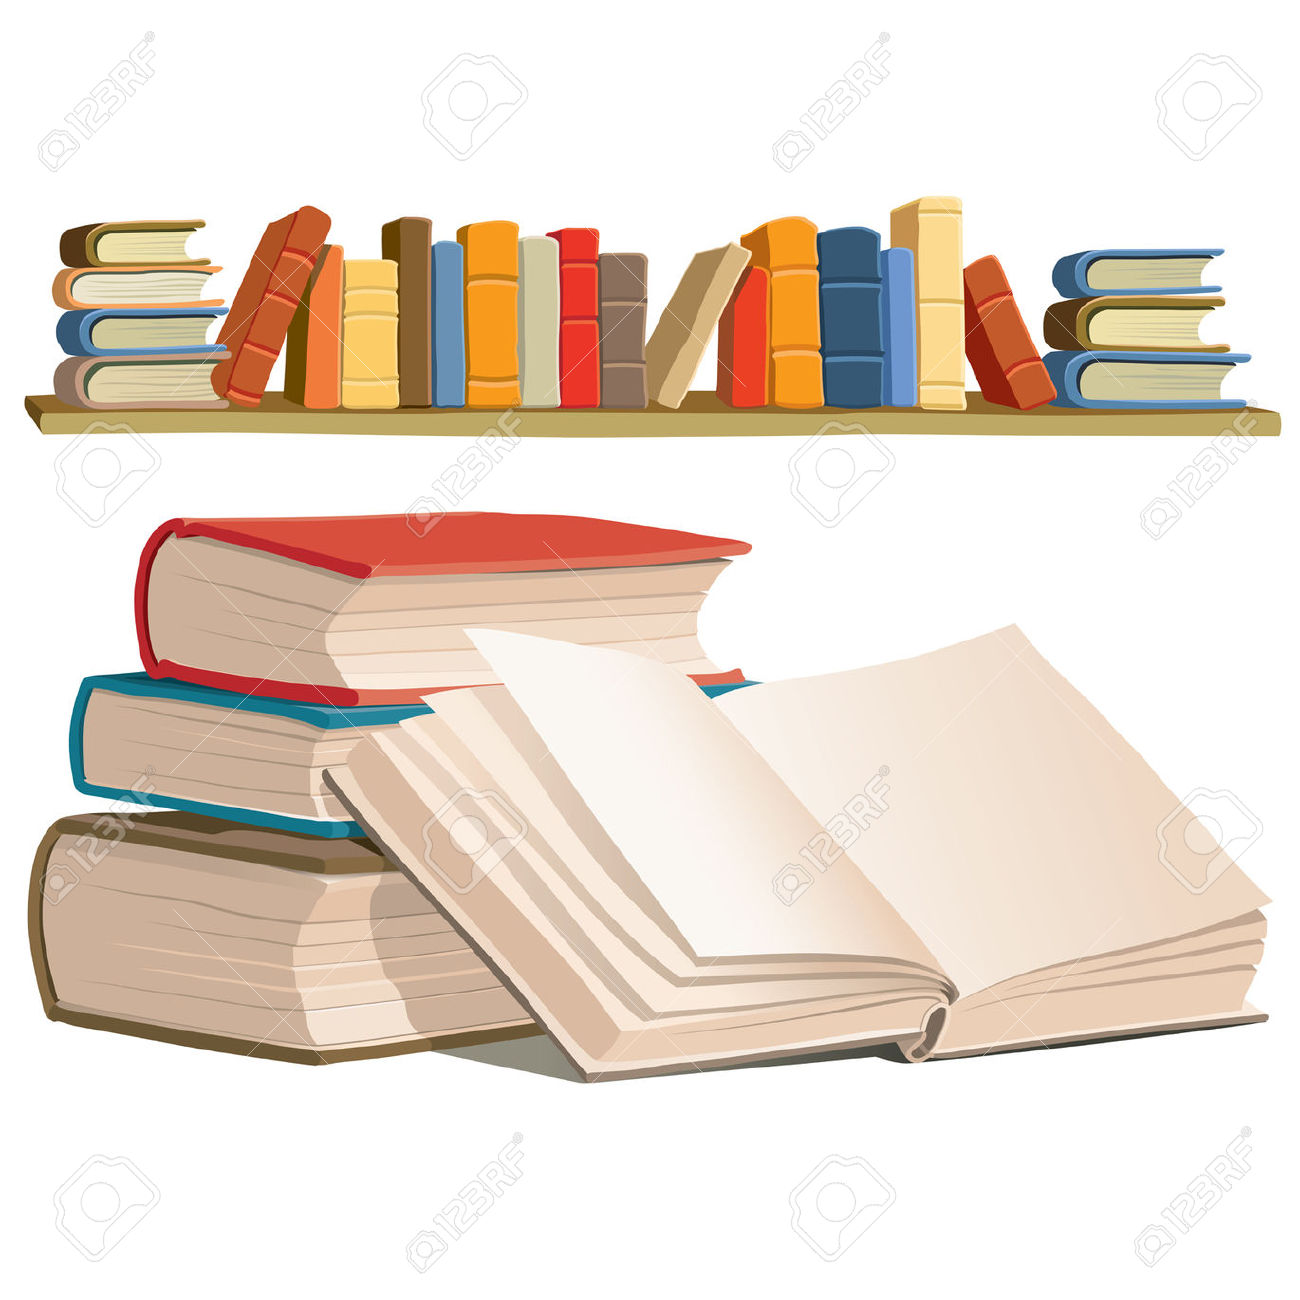 Collection Of Colorful Books On White Background. Royalty Free.